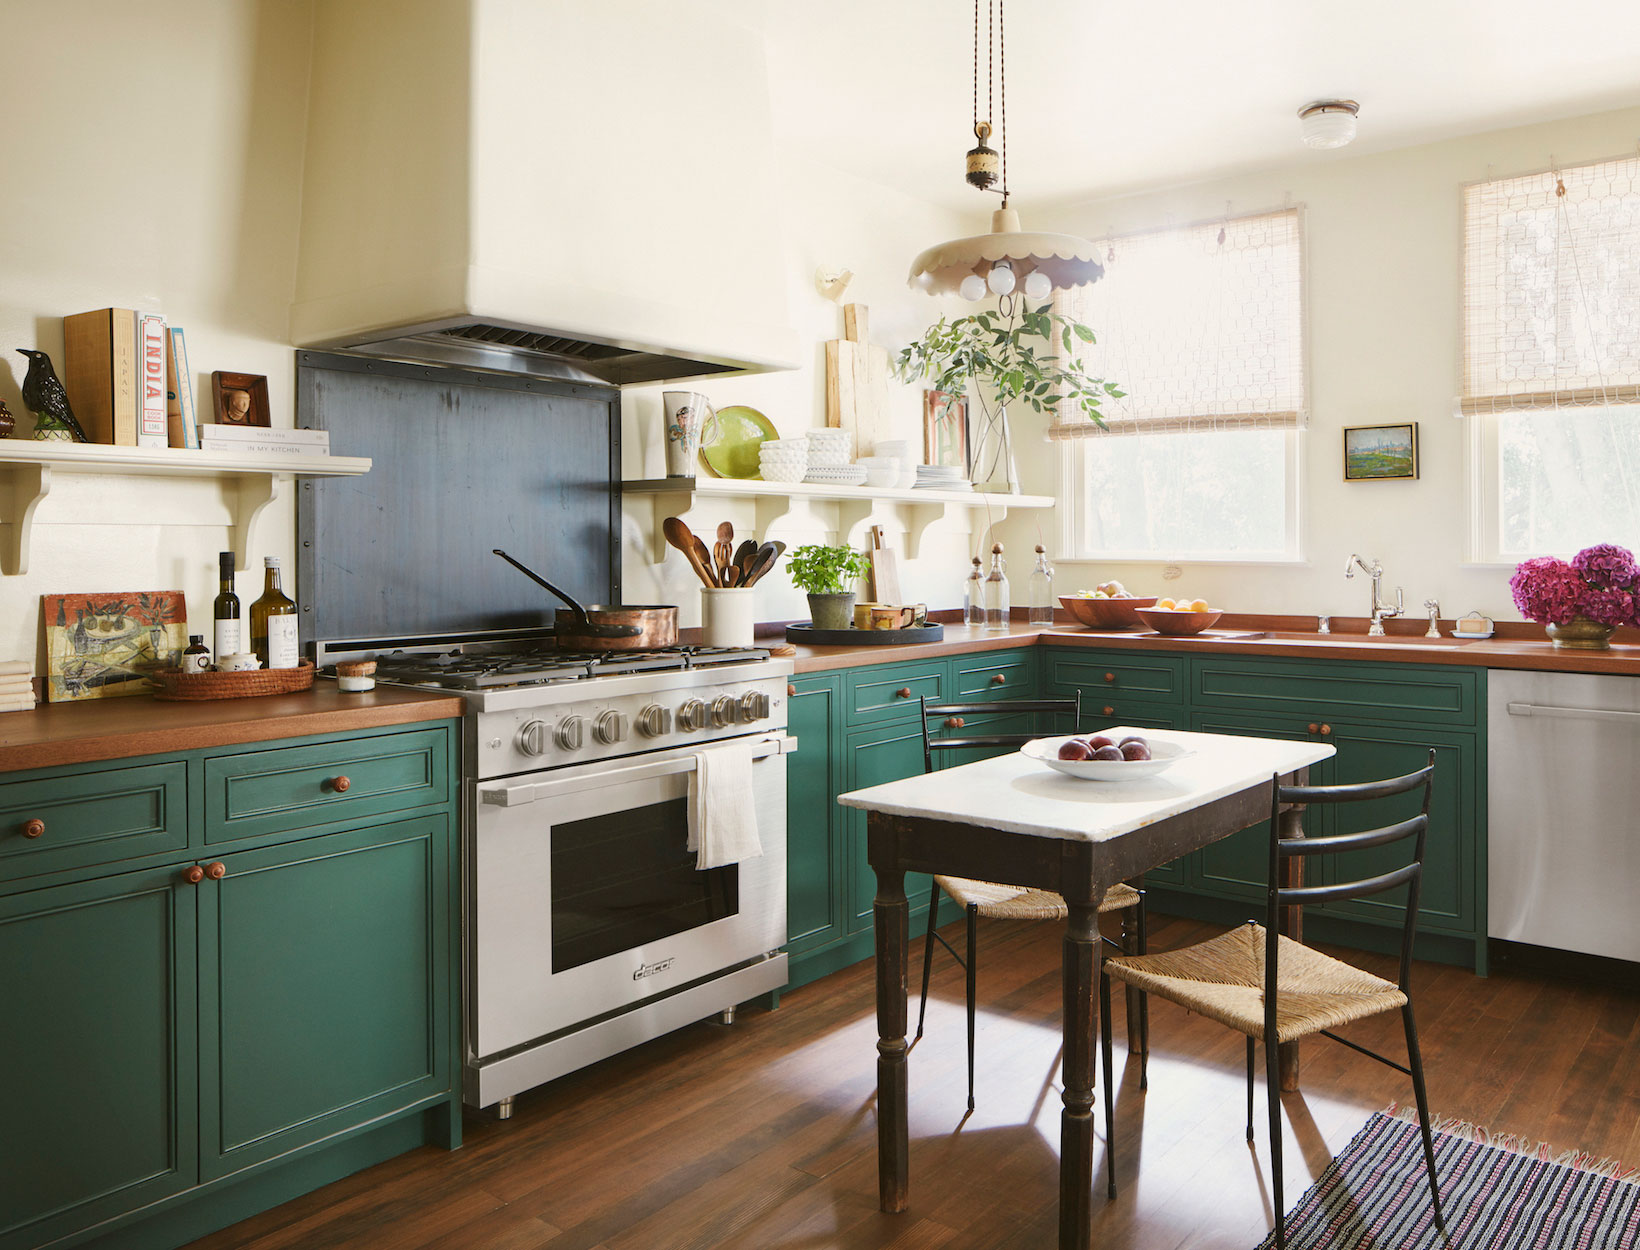 An Interior Designer\'s Genius Tips for a Kitchen Makeover | Goop